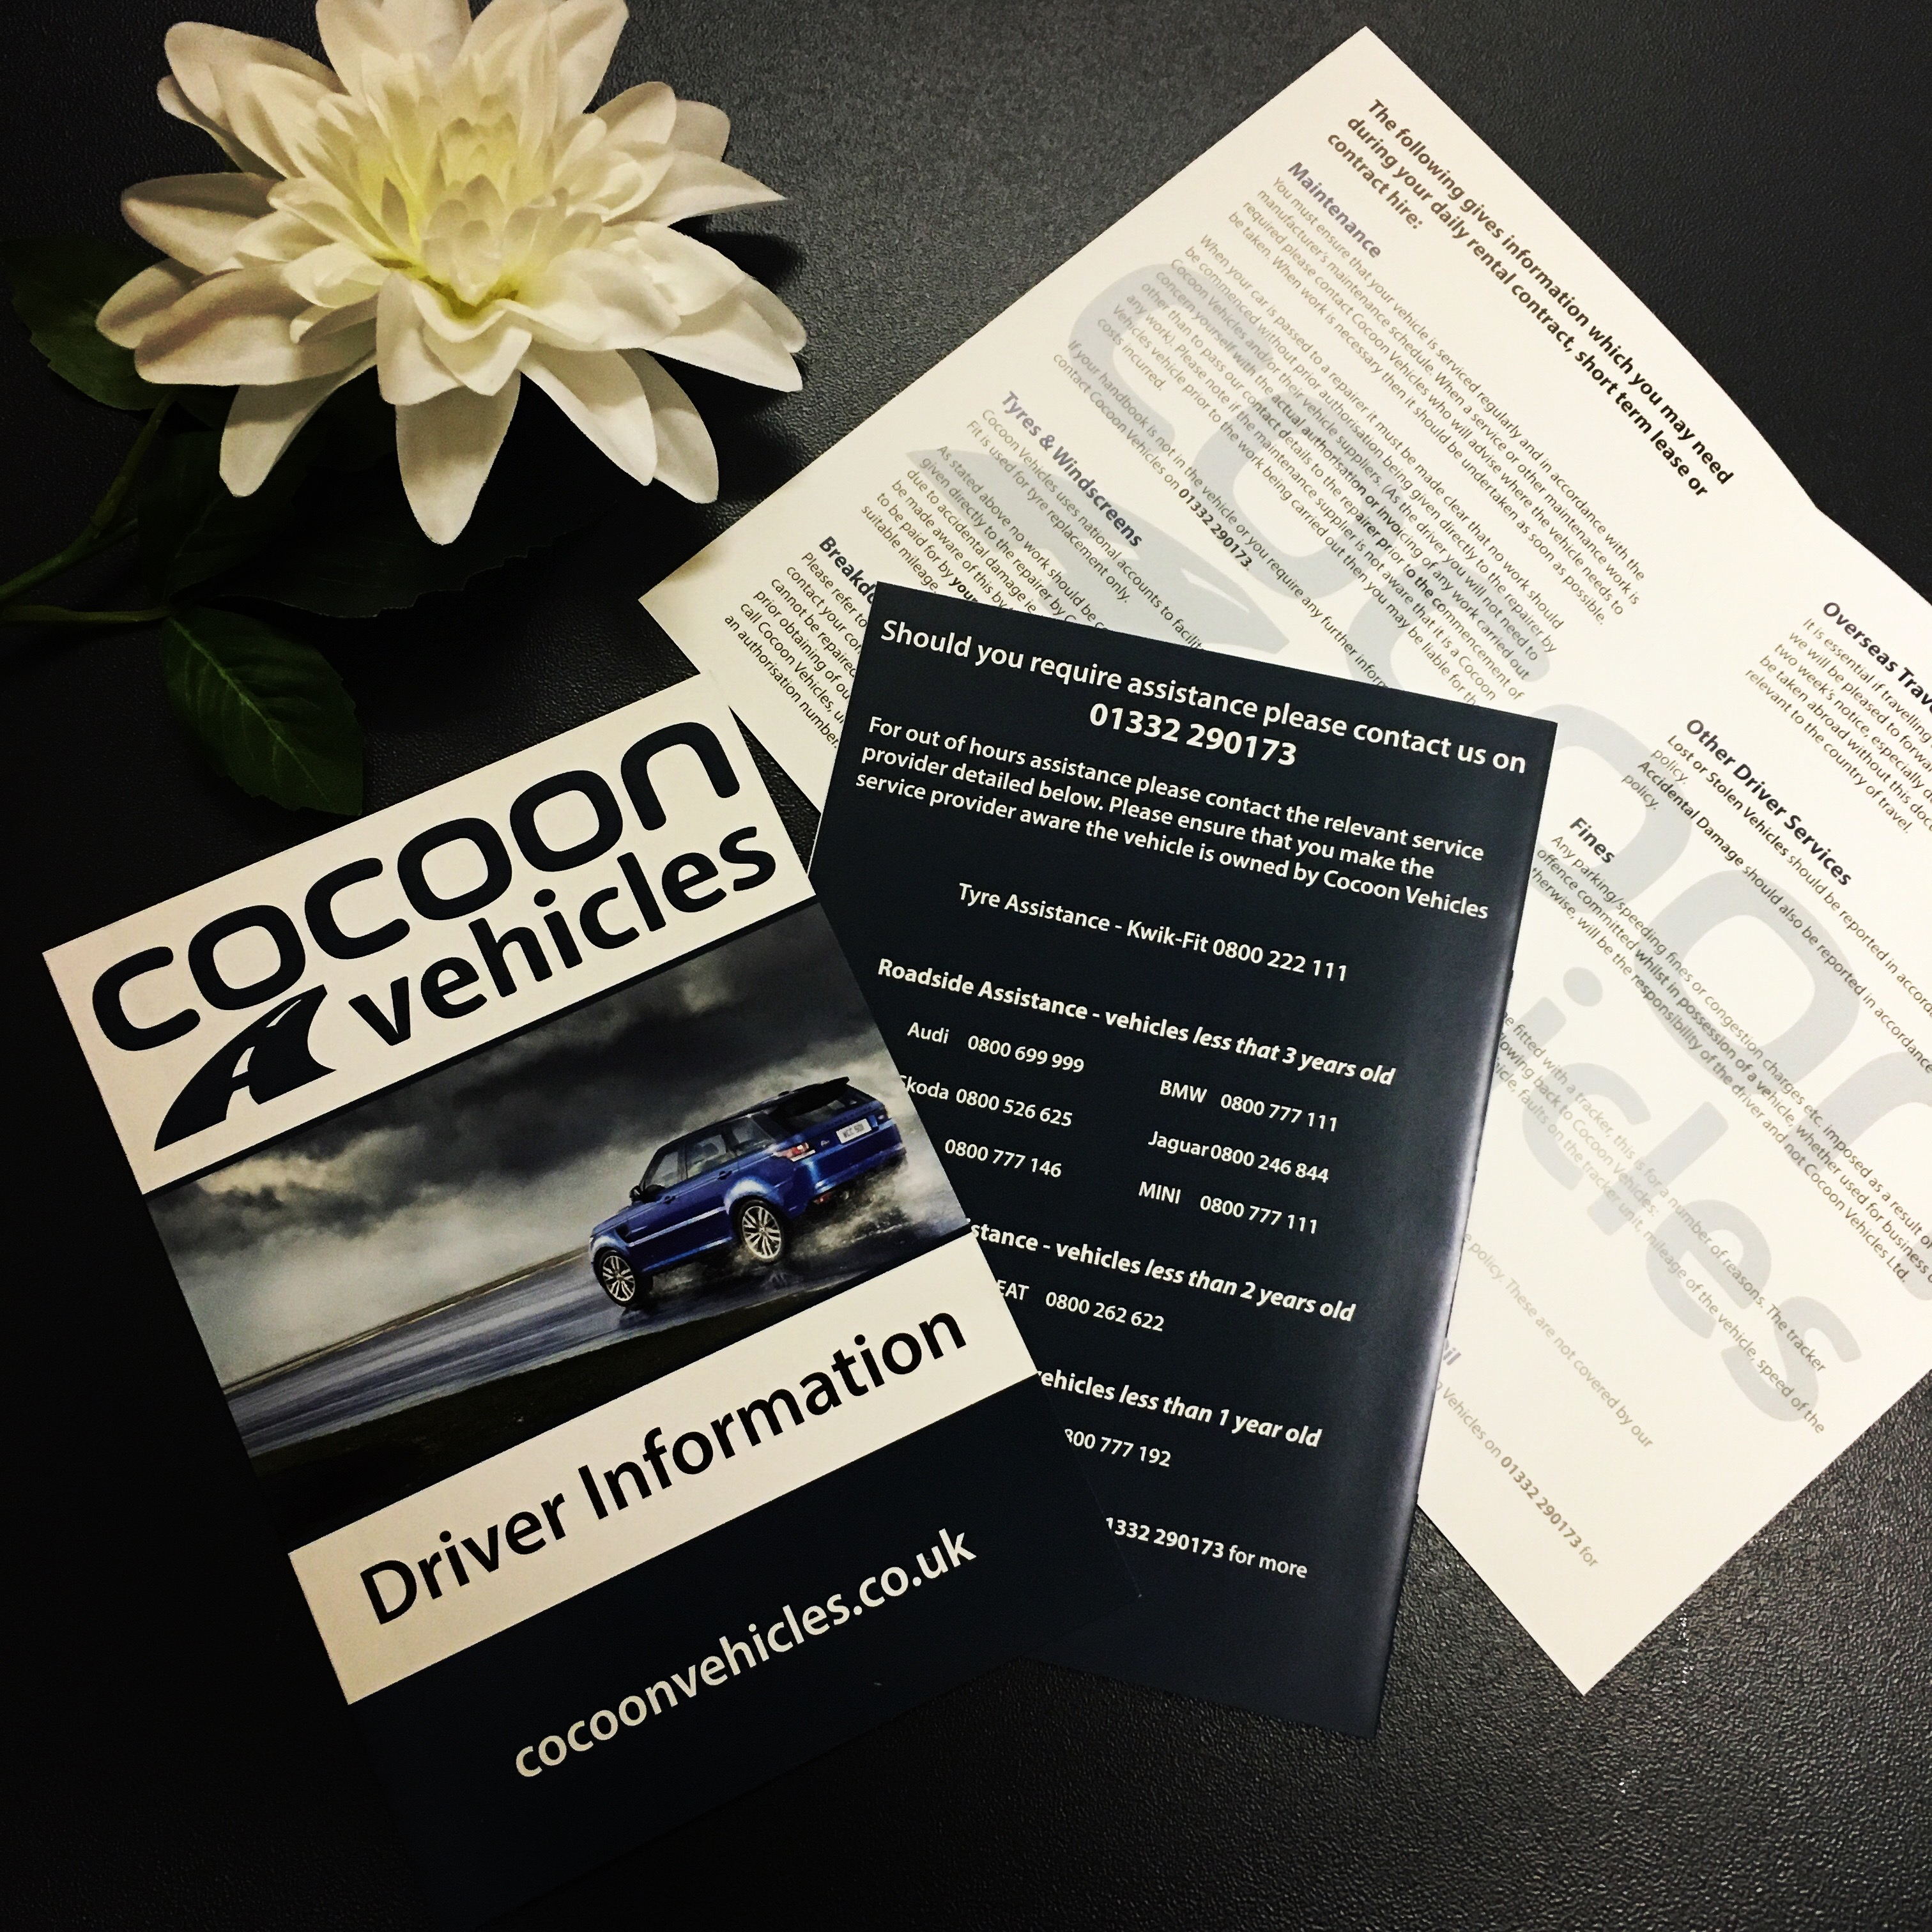 A4 Folded Leaflets - Cocoon Vehicles